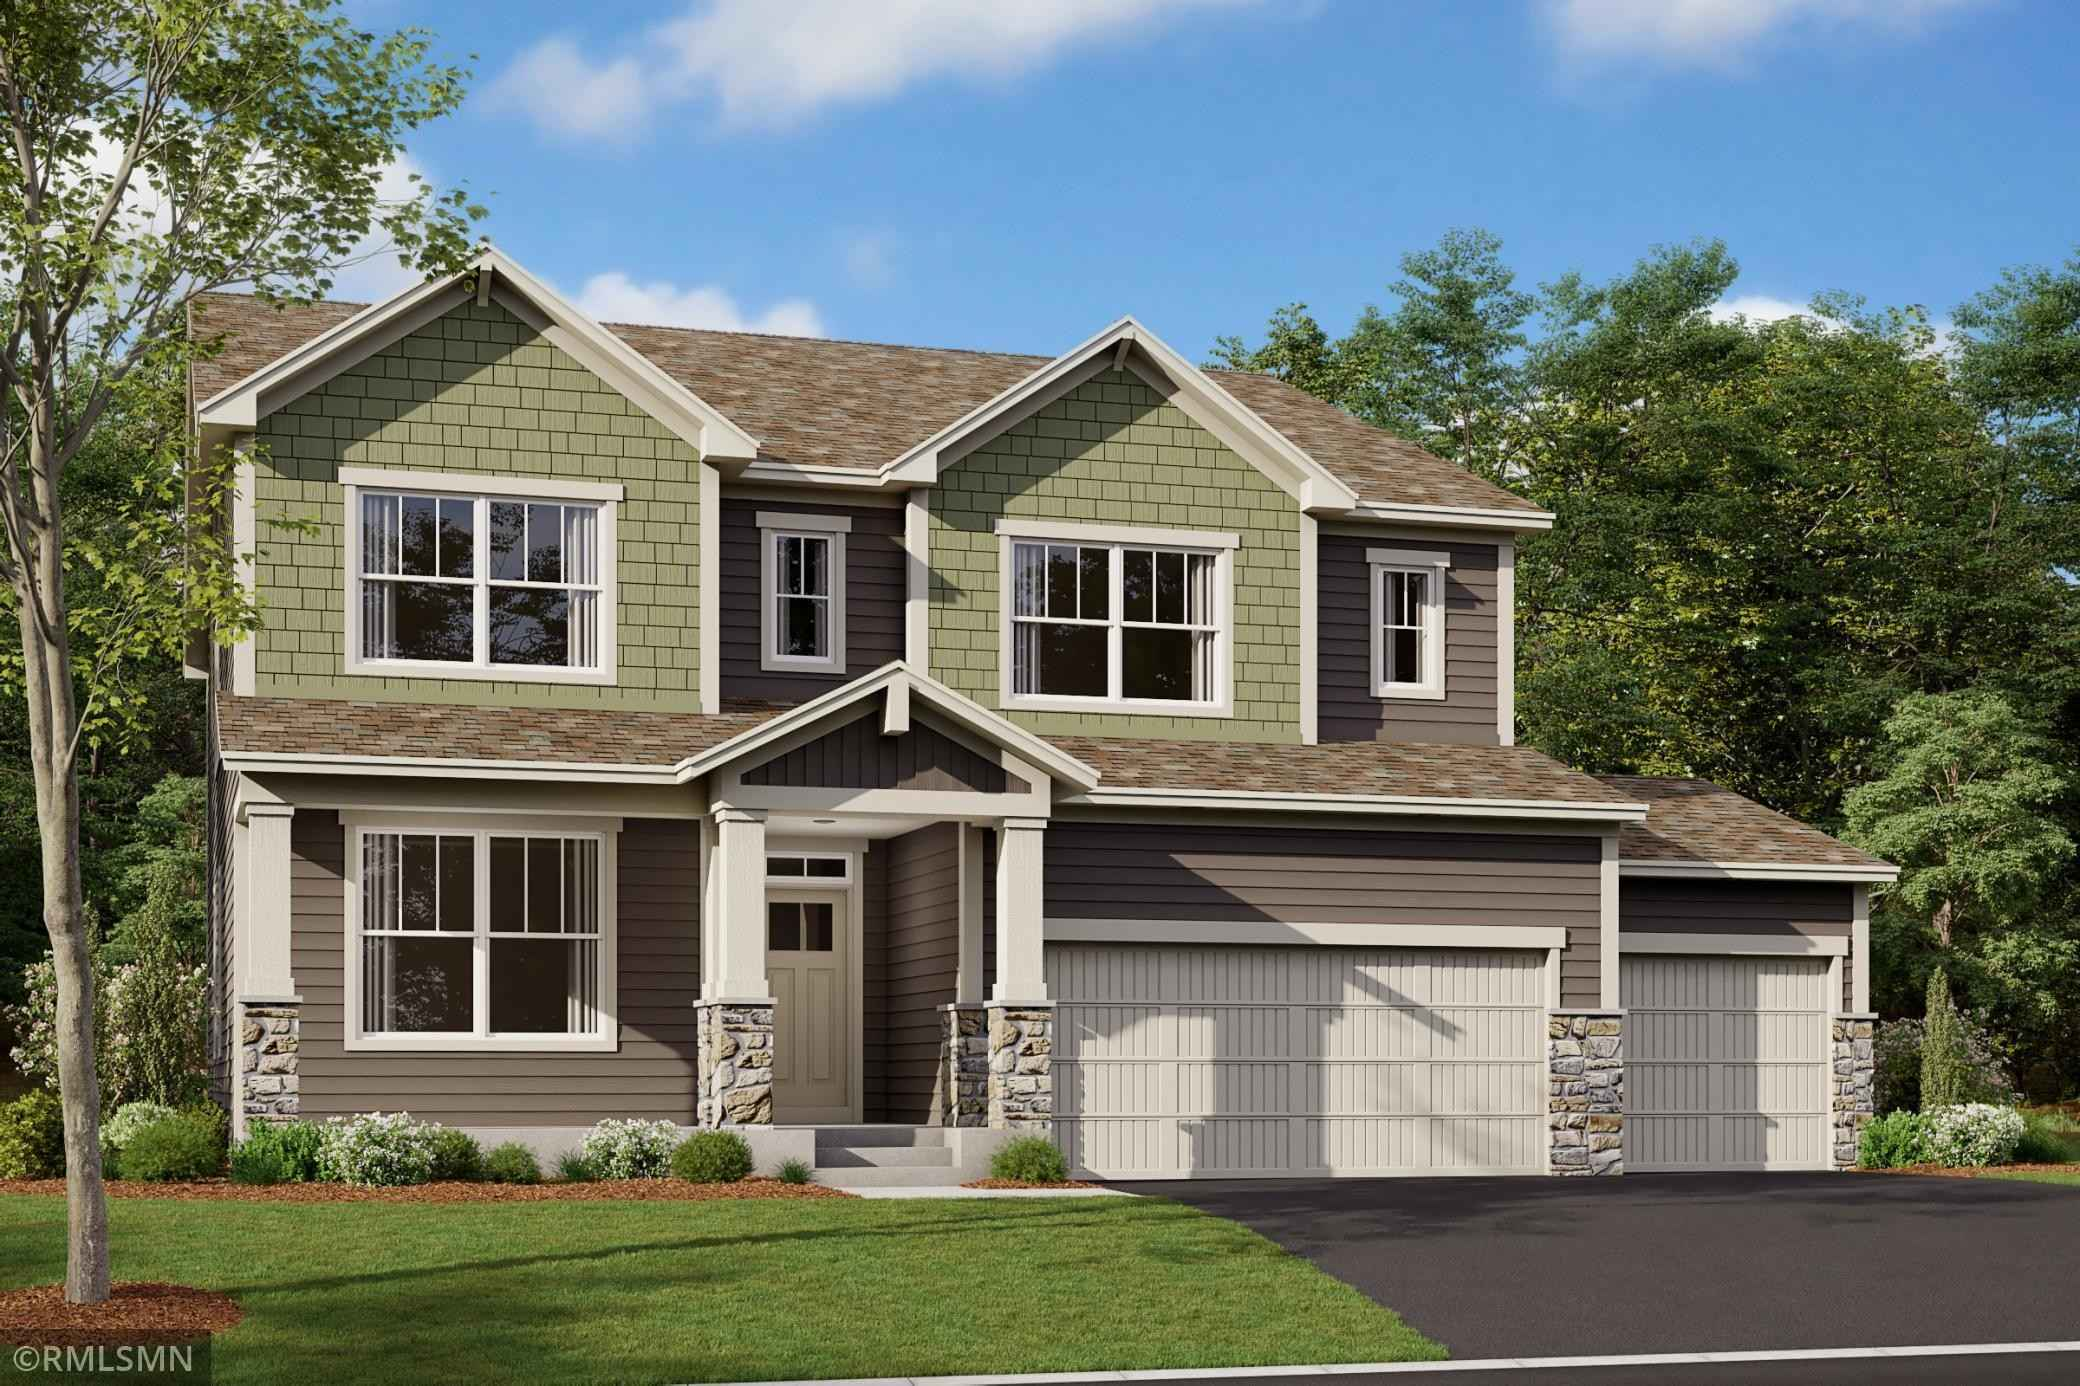 View 1 photos of this 5 bed, 5 bath, and 4,741 sqft. single_family home located at 14729 Cheshire Way, Dayton, Minnesota 55327 is Pending for $675,300.